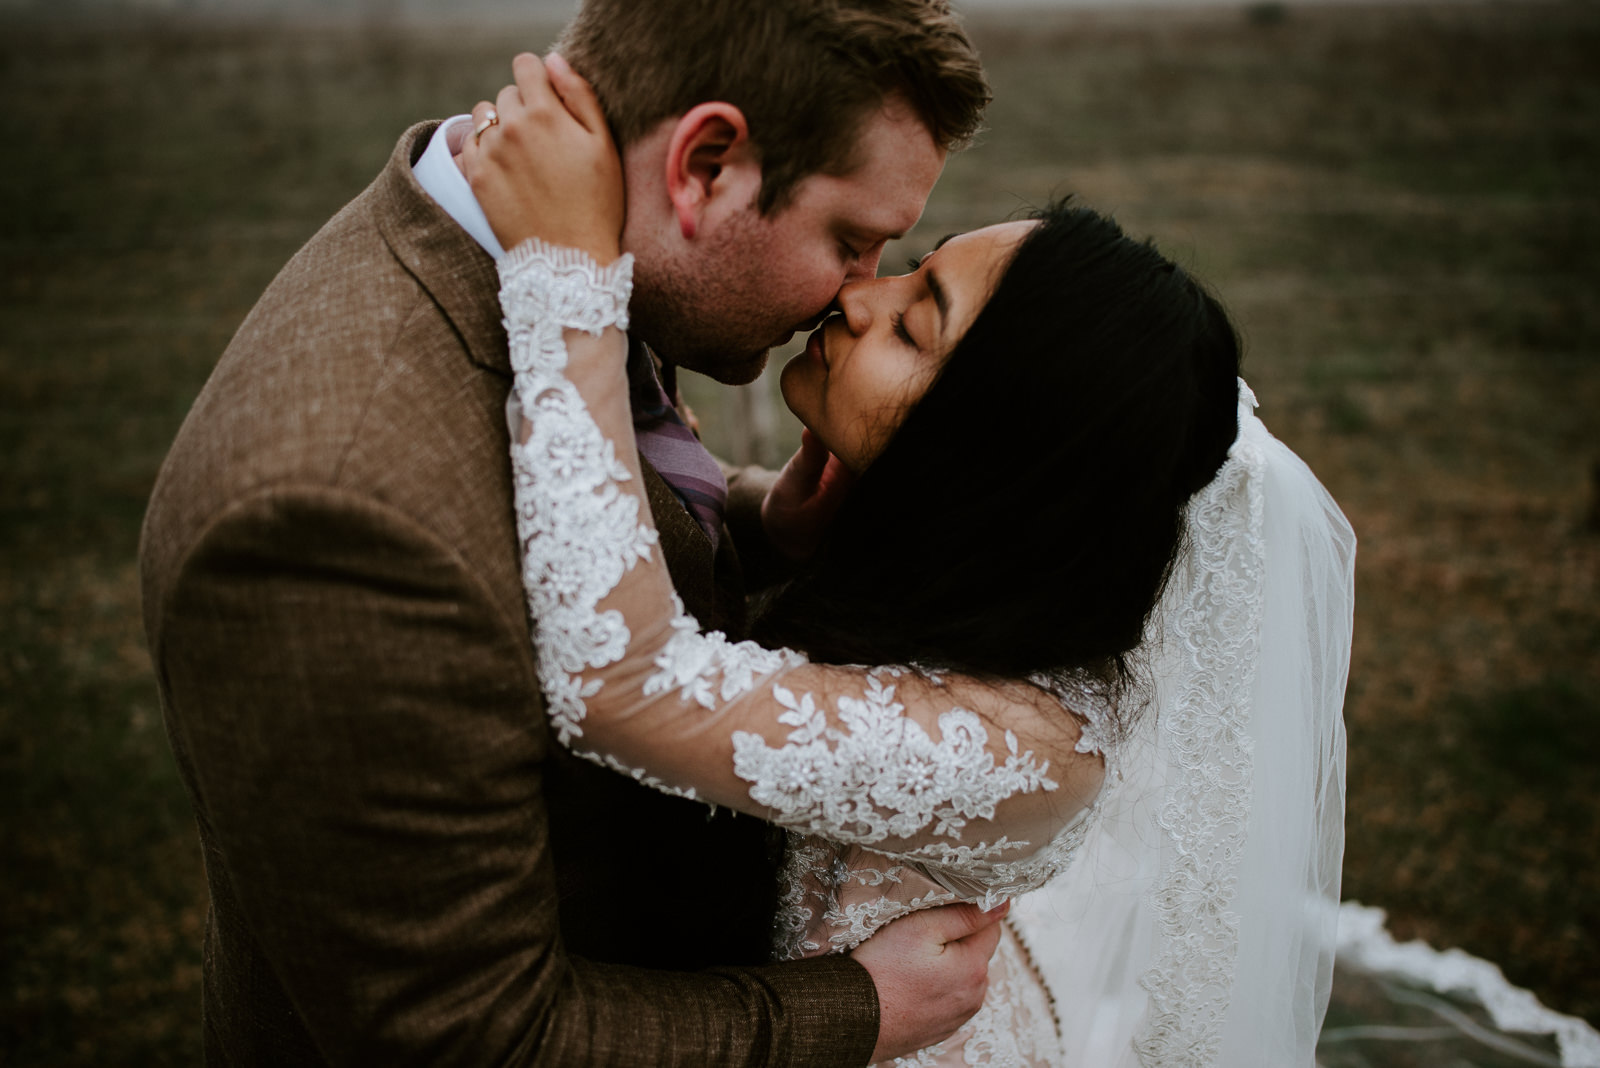 emotional wedding photos from donny tidmore